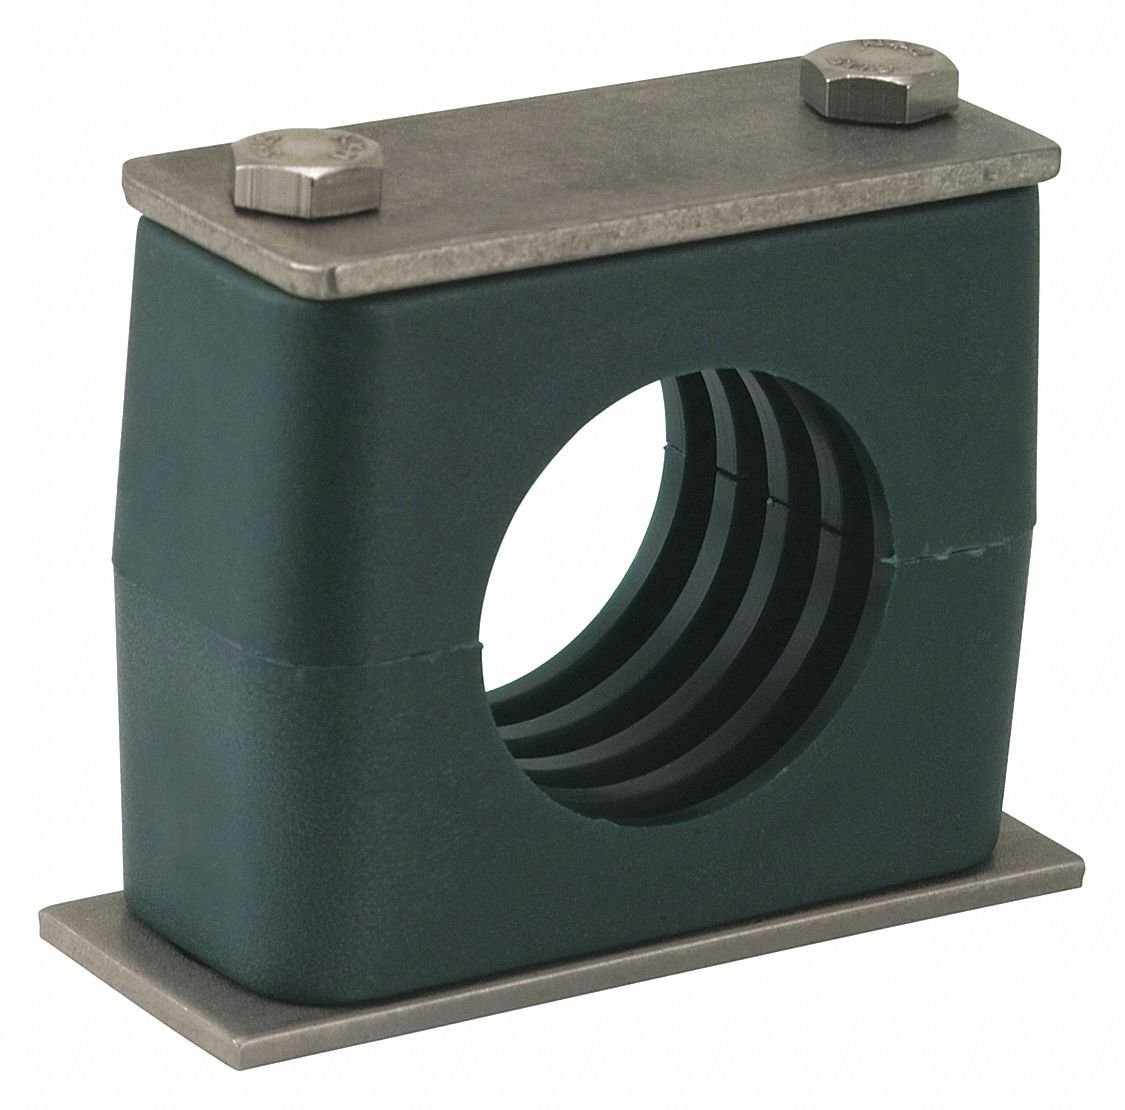 ZSI S-4017S-SS Beta Standard 3/4in Pipe Assembly, Poly Cushion, Stainless Hardware S4017S-SS